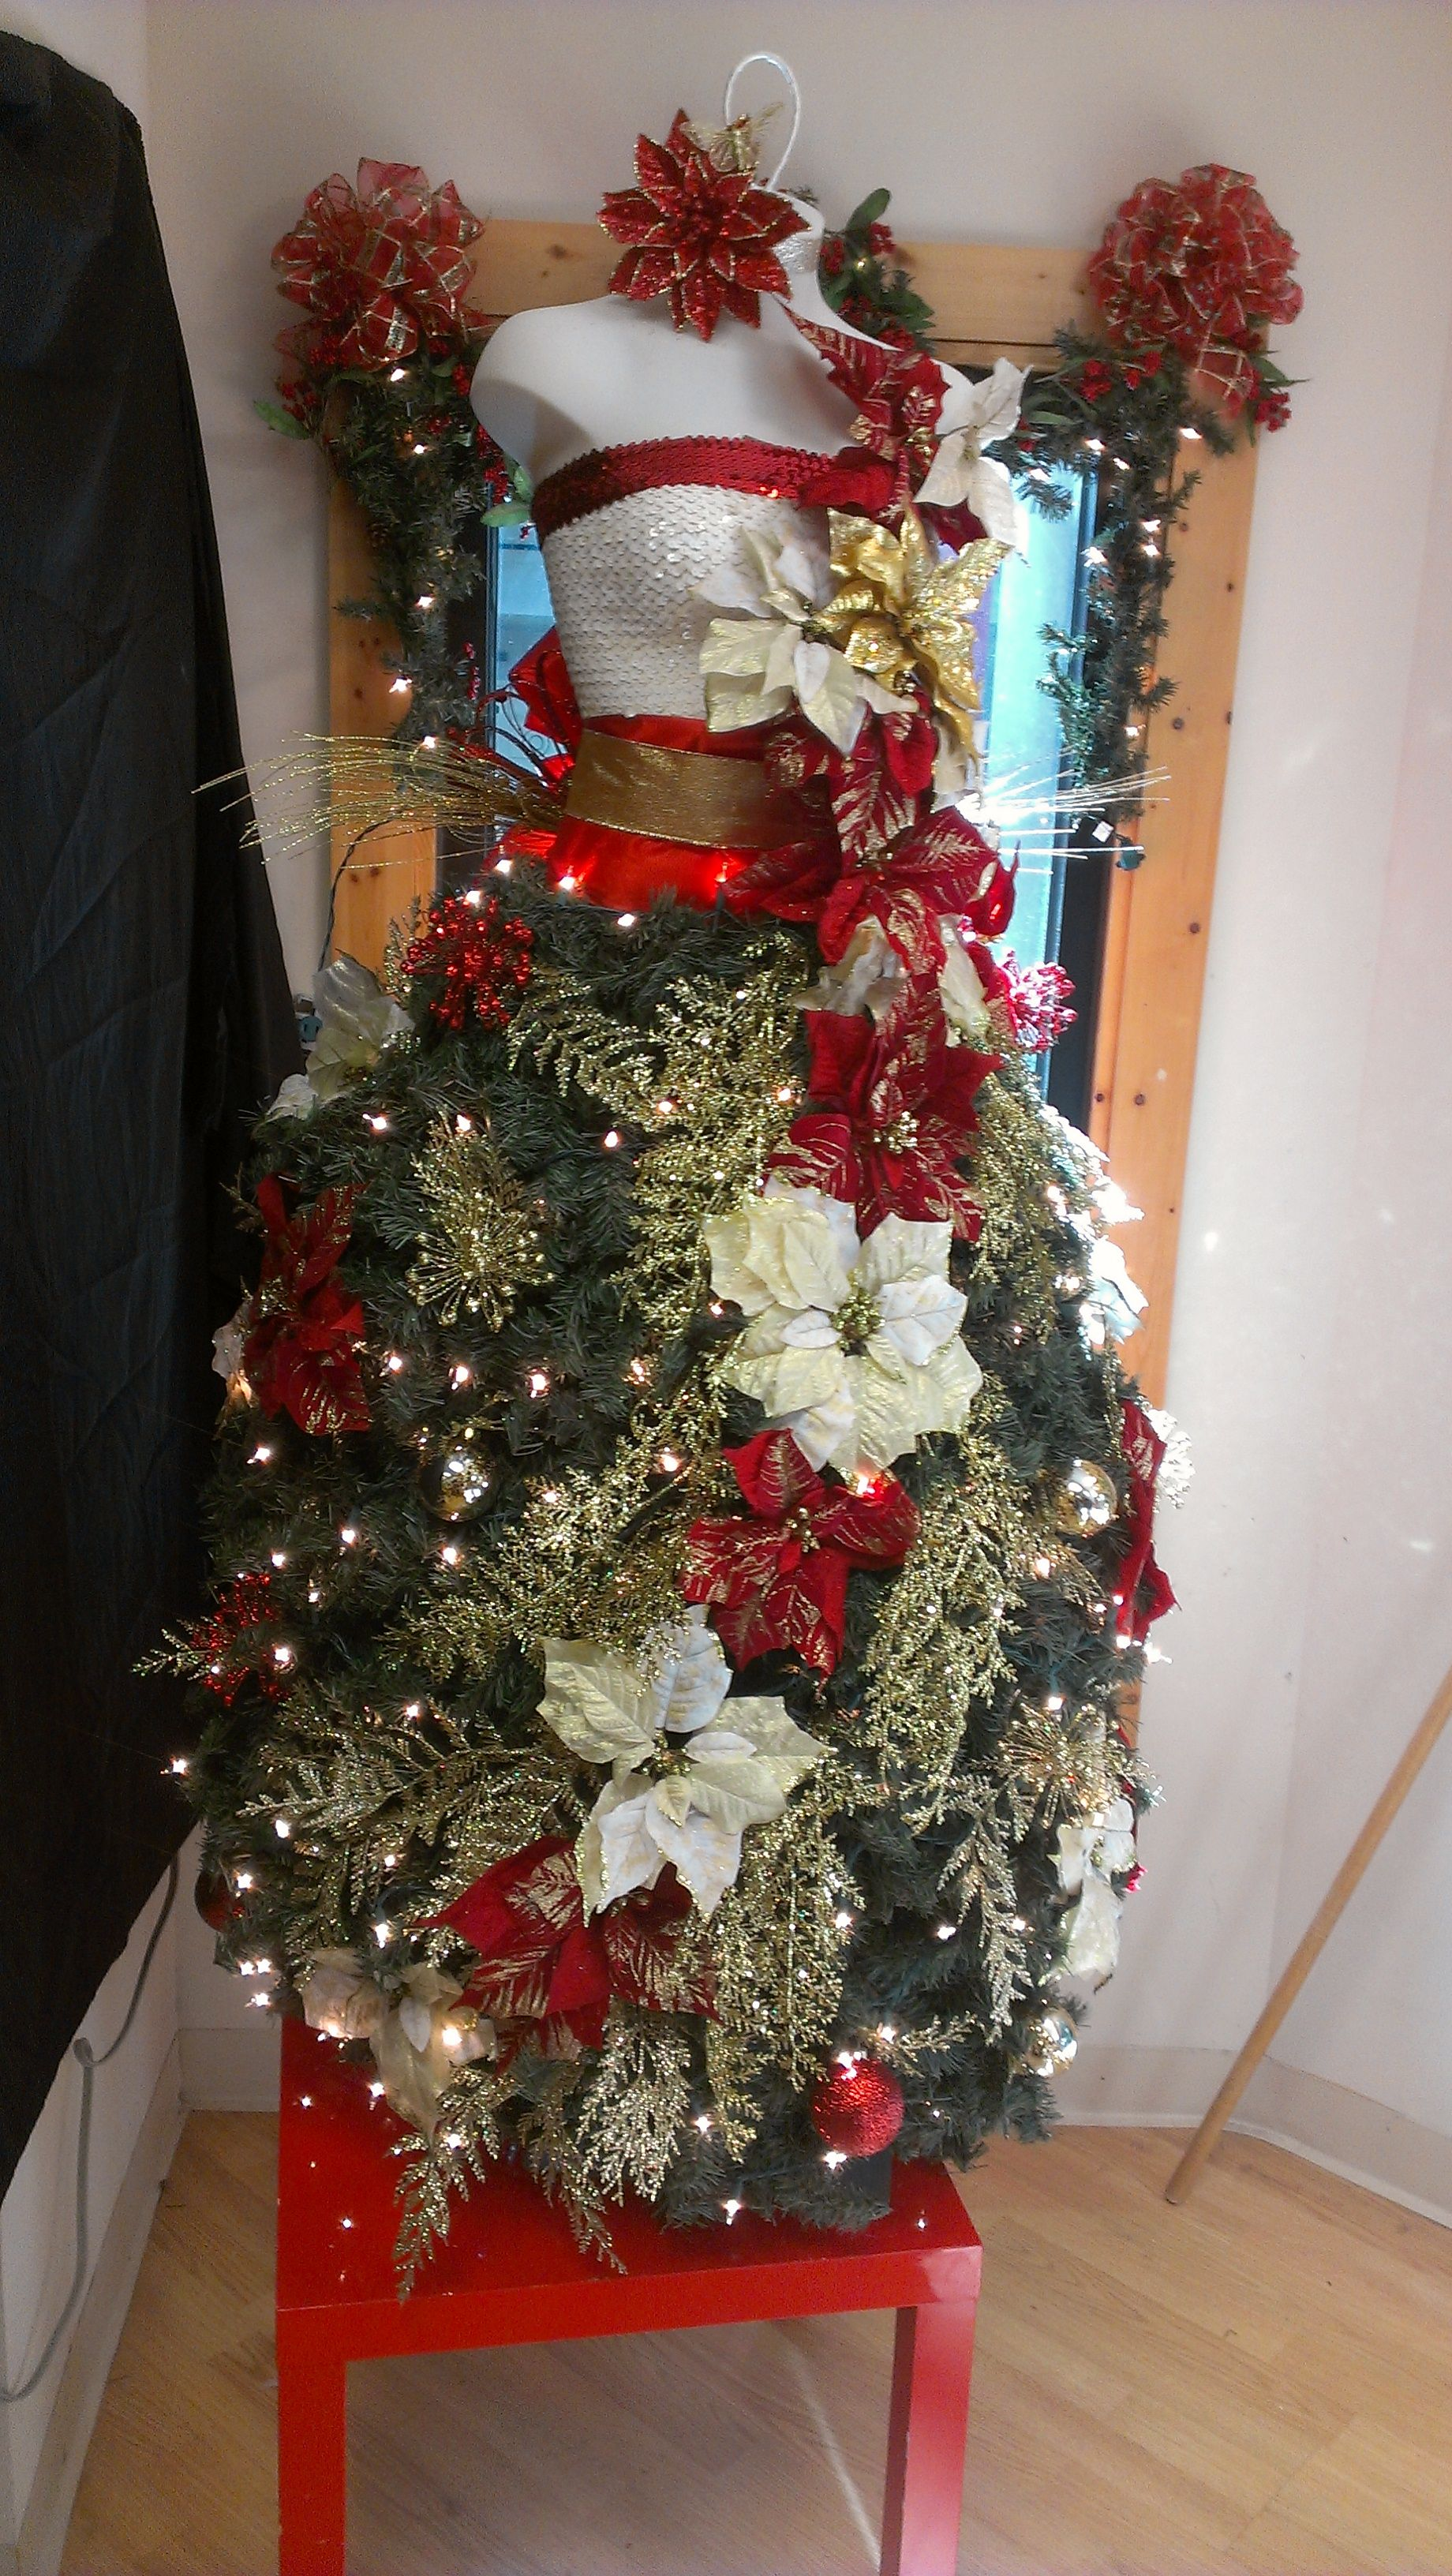 Designed by mary anne e of savannah ga dress form How to dress the perfect christmas tree